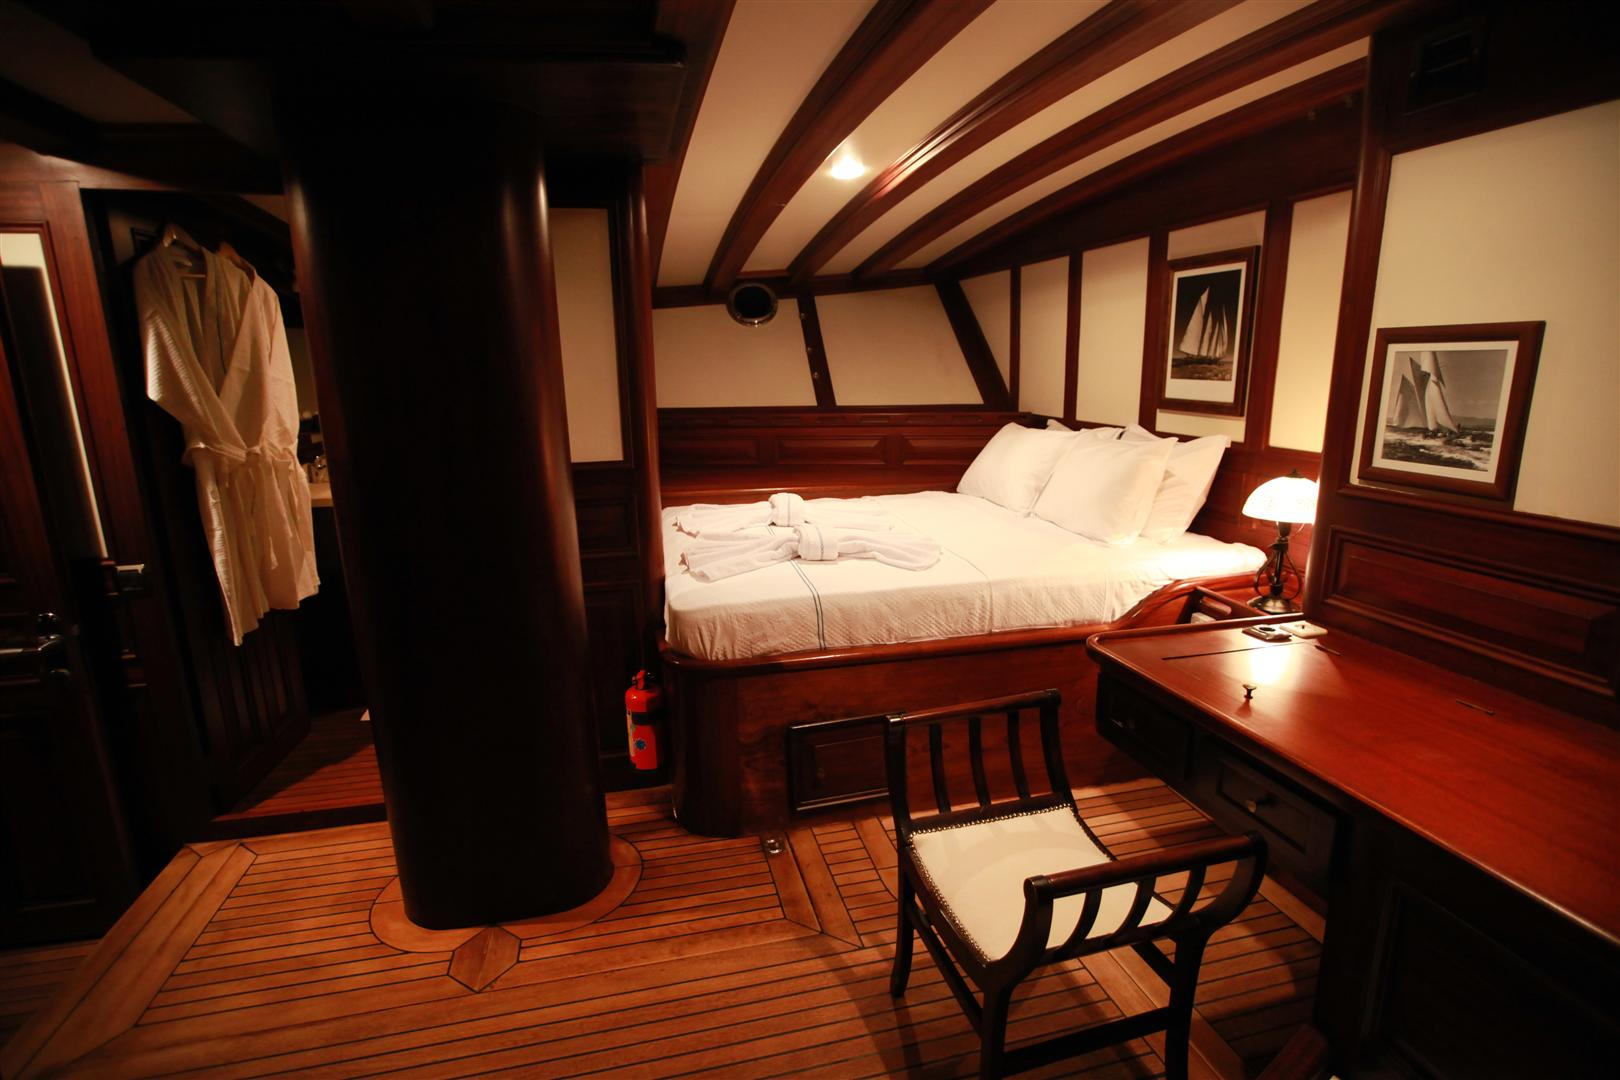 Charter Yacht Grande Mare Accommodation Yacht Charter